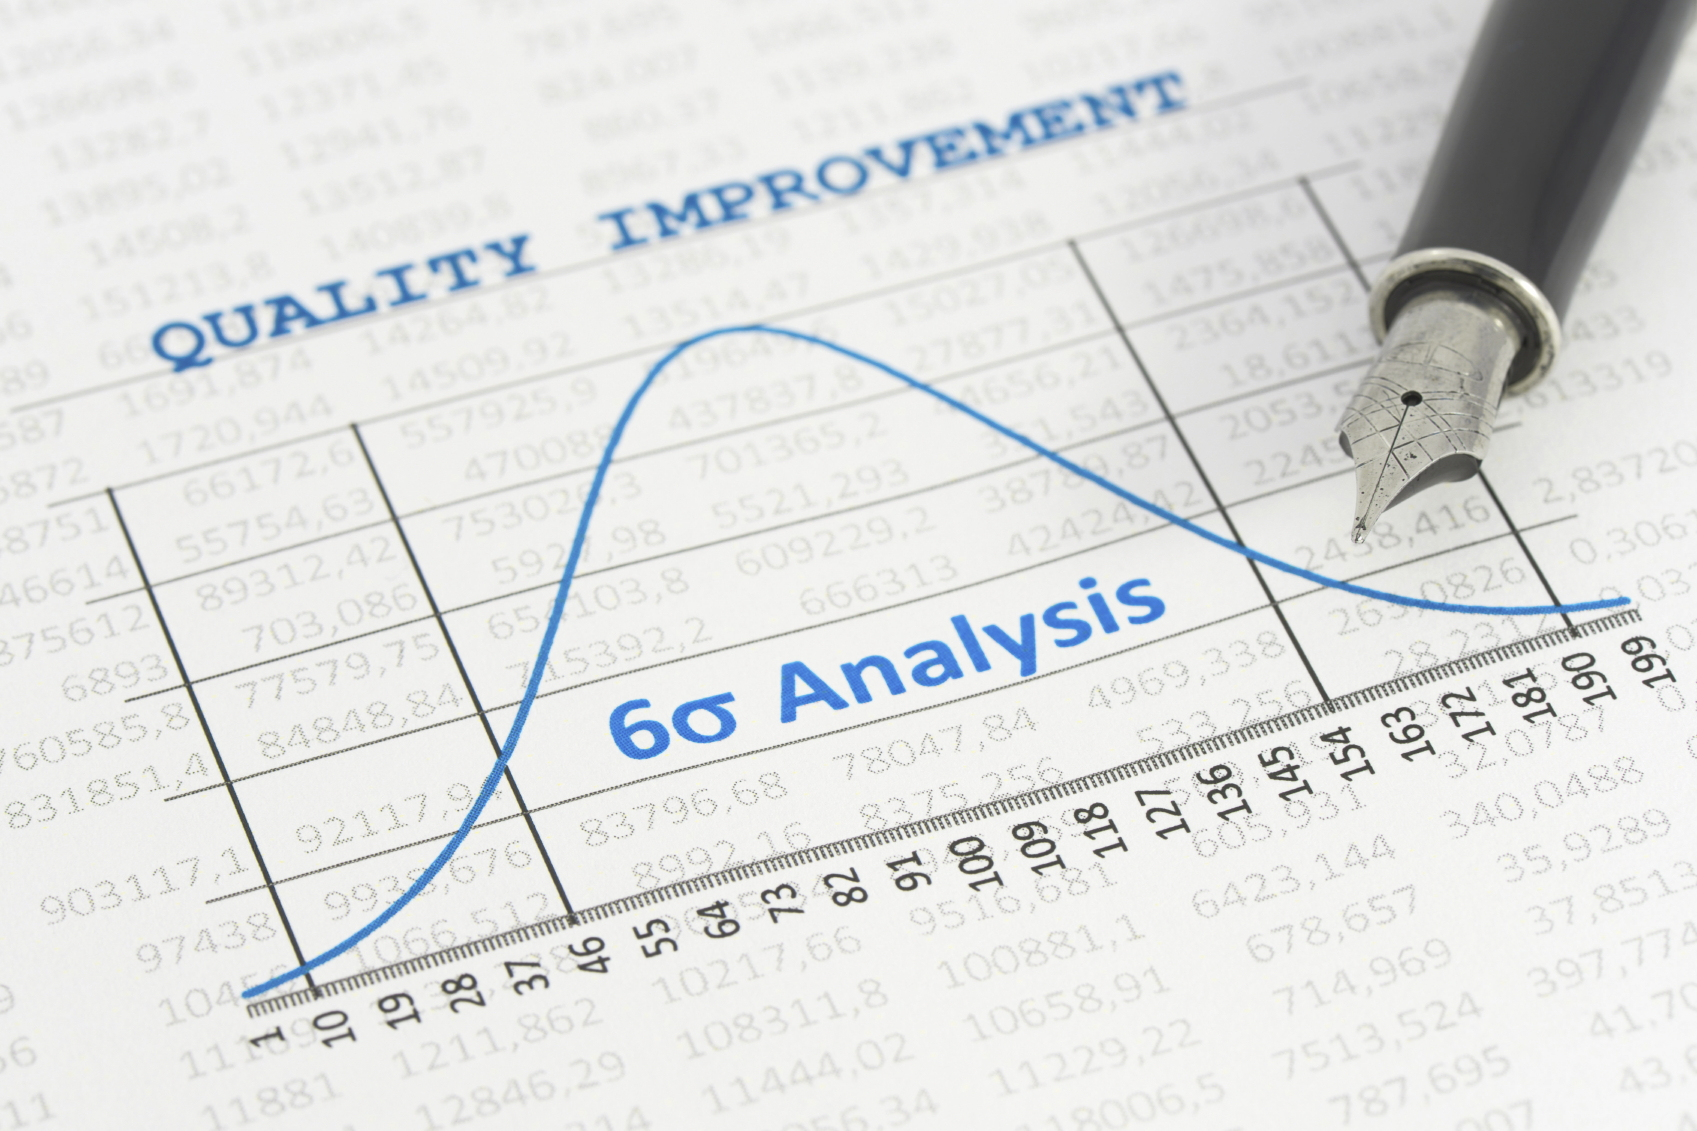 Six Sigma curve shows quality improvement results